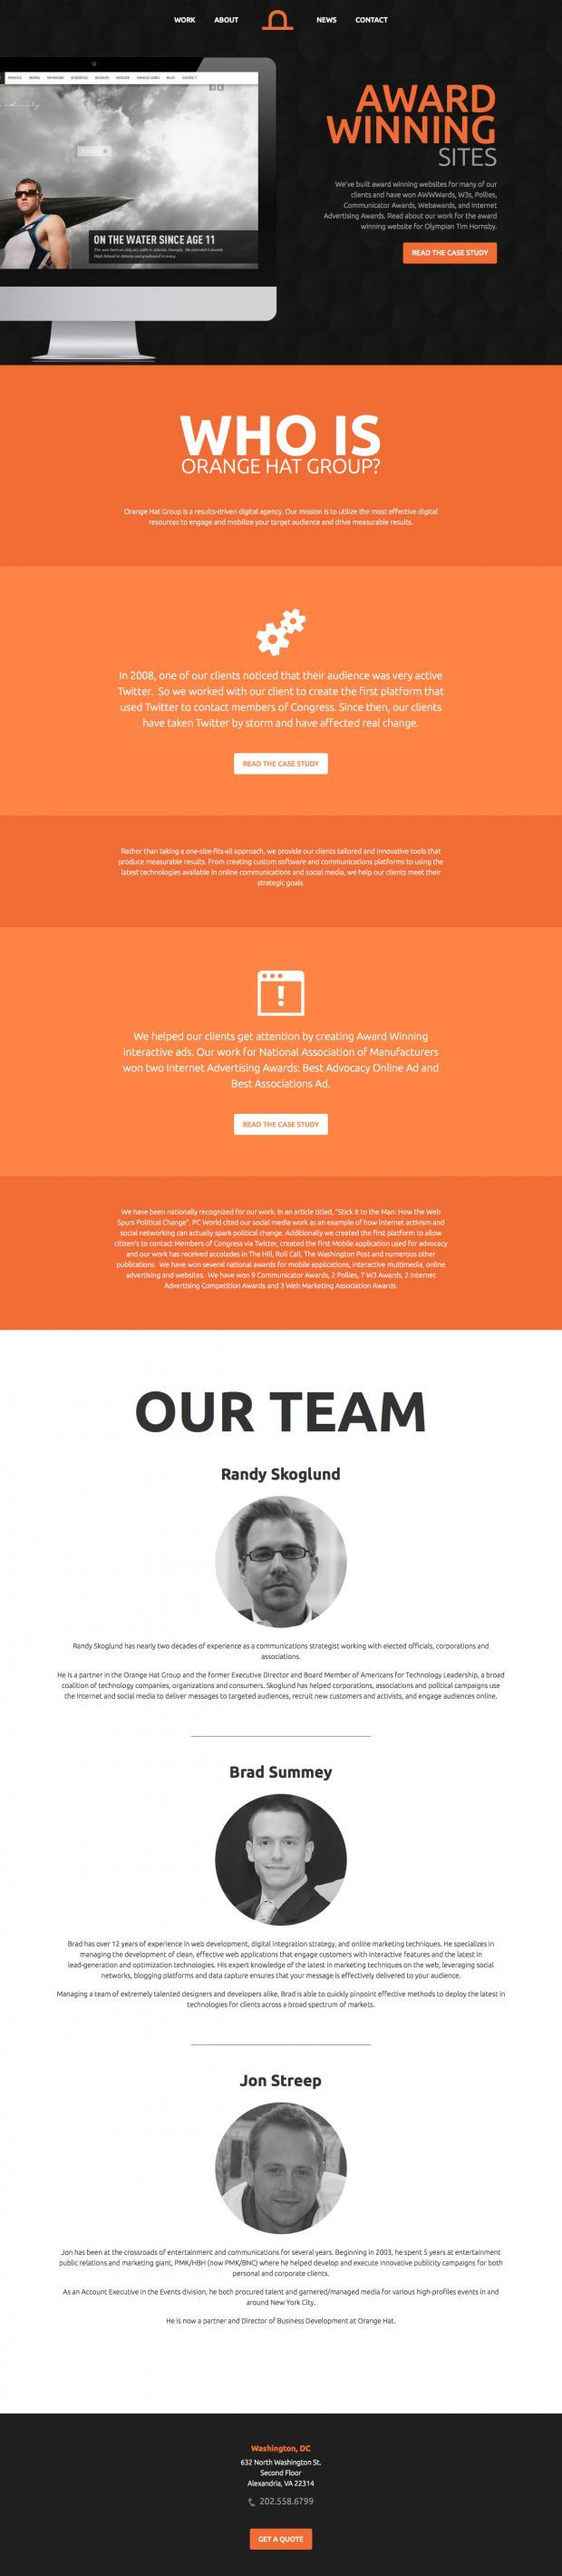 Orange Hat Group is a new media mobilization firm, specializing in using Internet and mobile communication platforms to  - Best Webdesign inspiration on www.niceoneilike.com #Portfolio, #Agency, #Mobile, #html5, #css3, #jQuery, #Scrolling #Site, #Website, #Communication